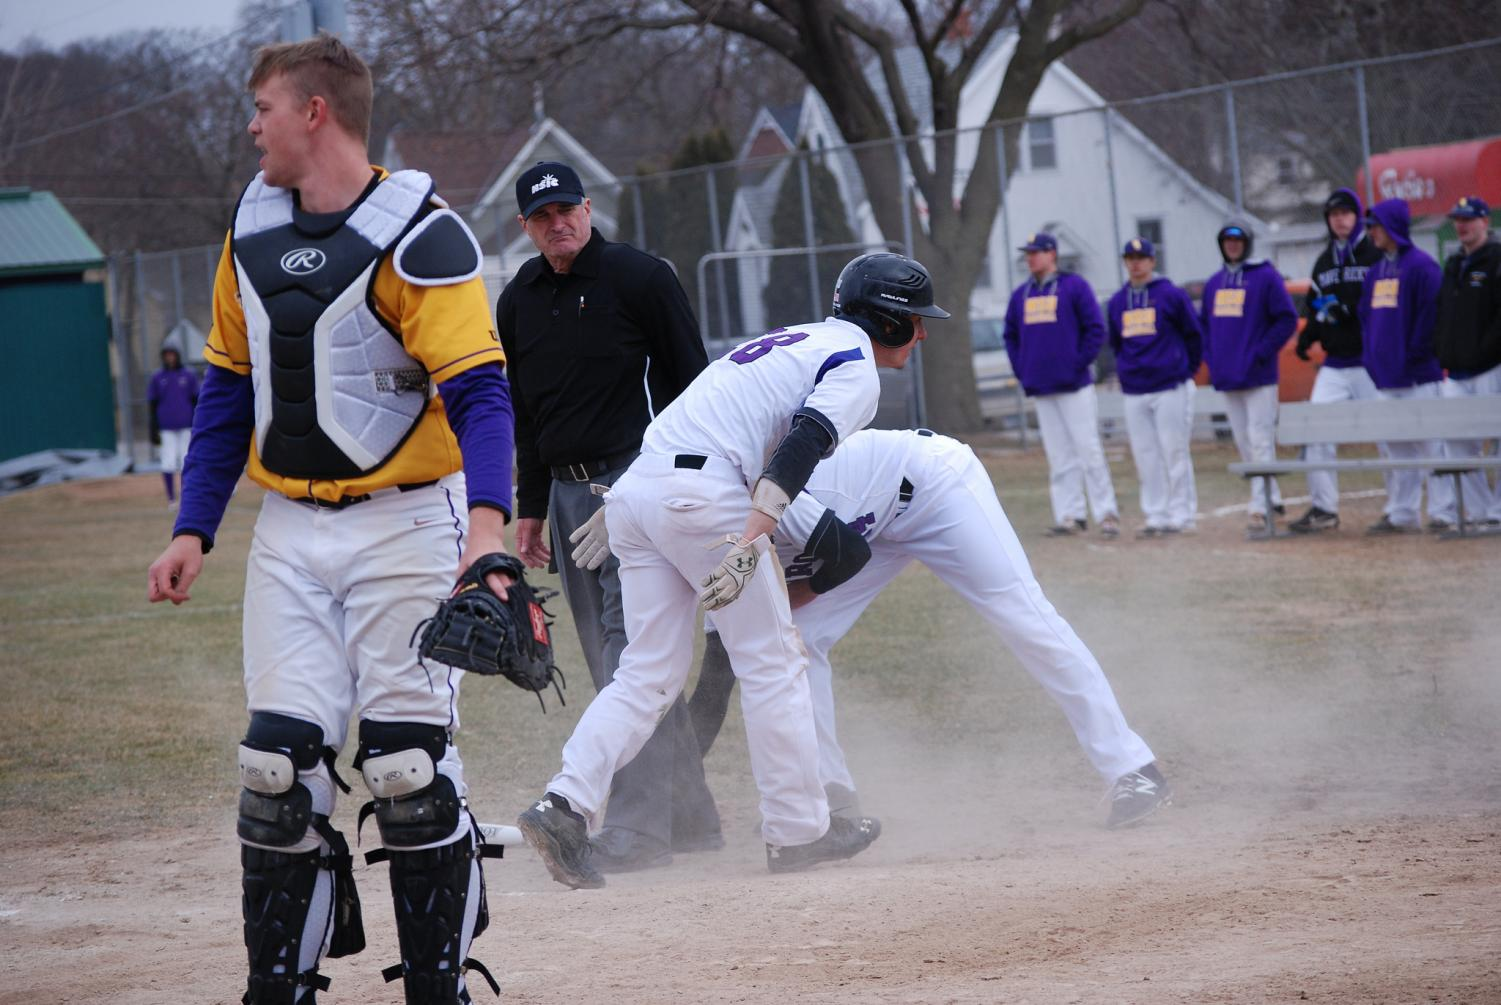 Taylor Field is congratulated by a teammate after completing a full run against Minnesota State University Mankato last season.